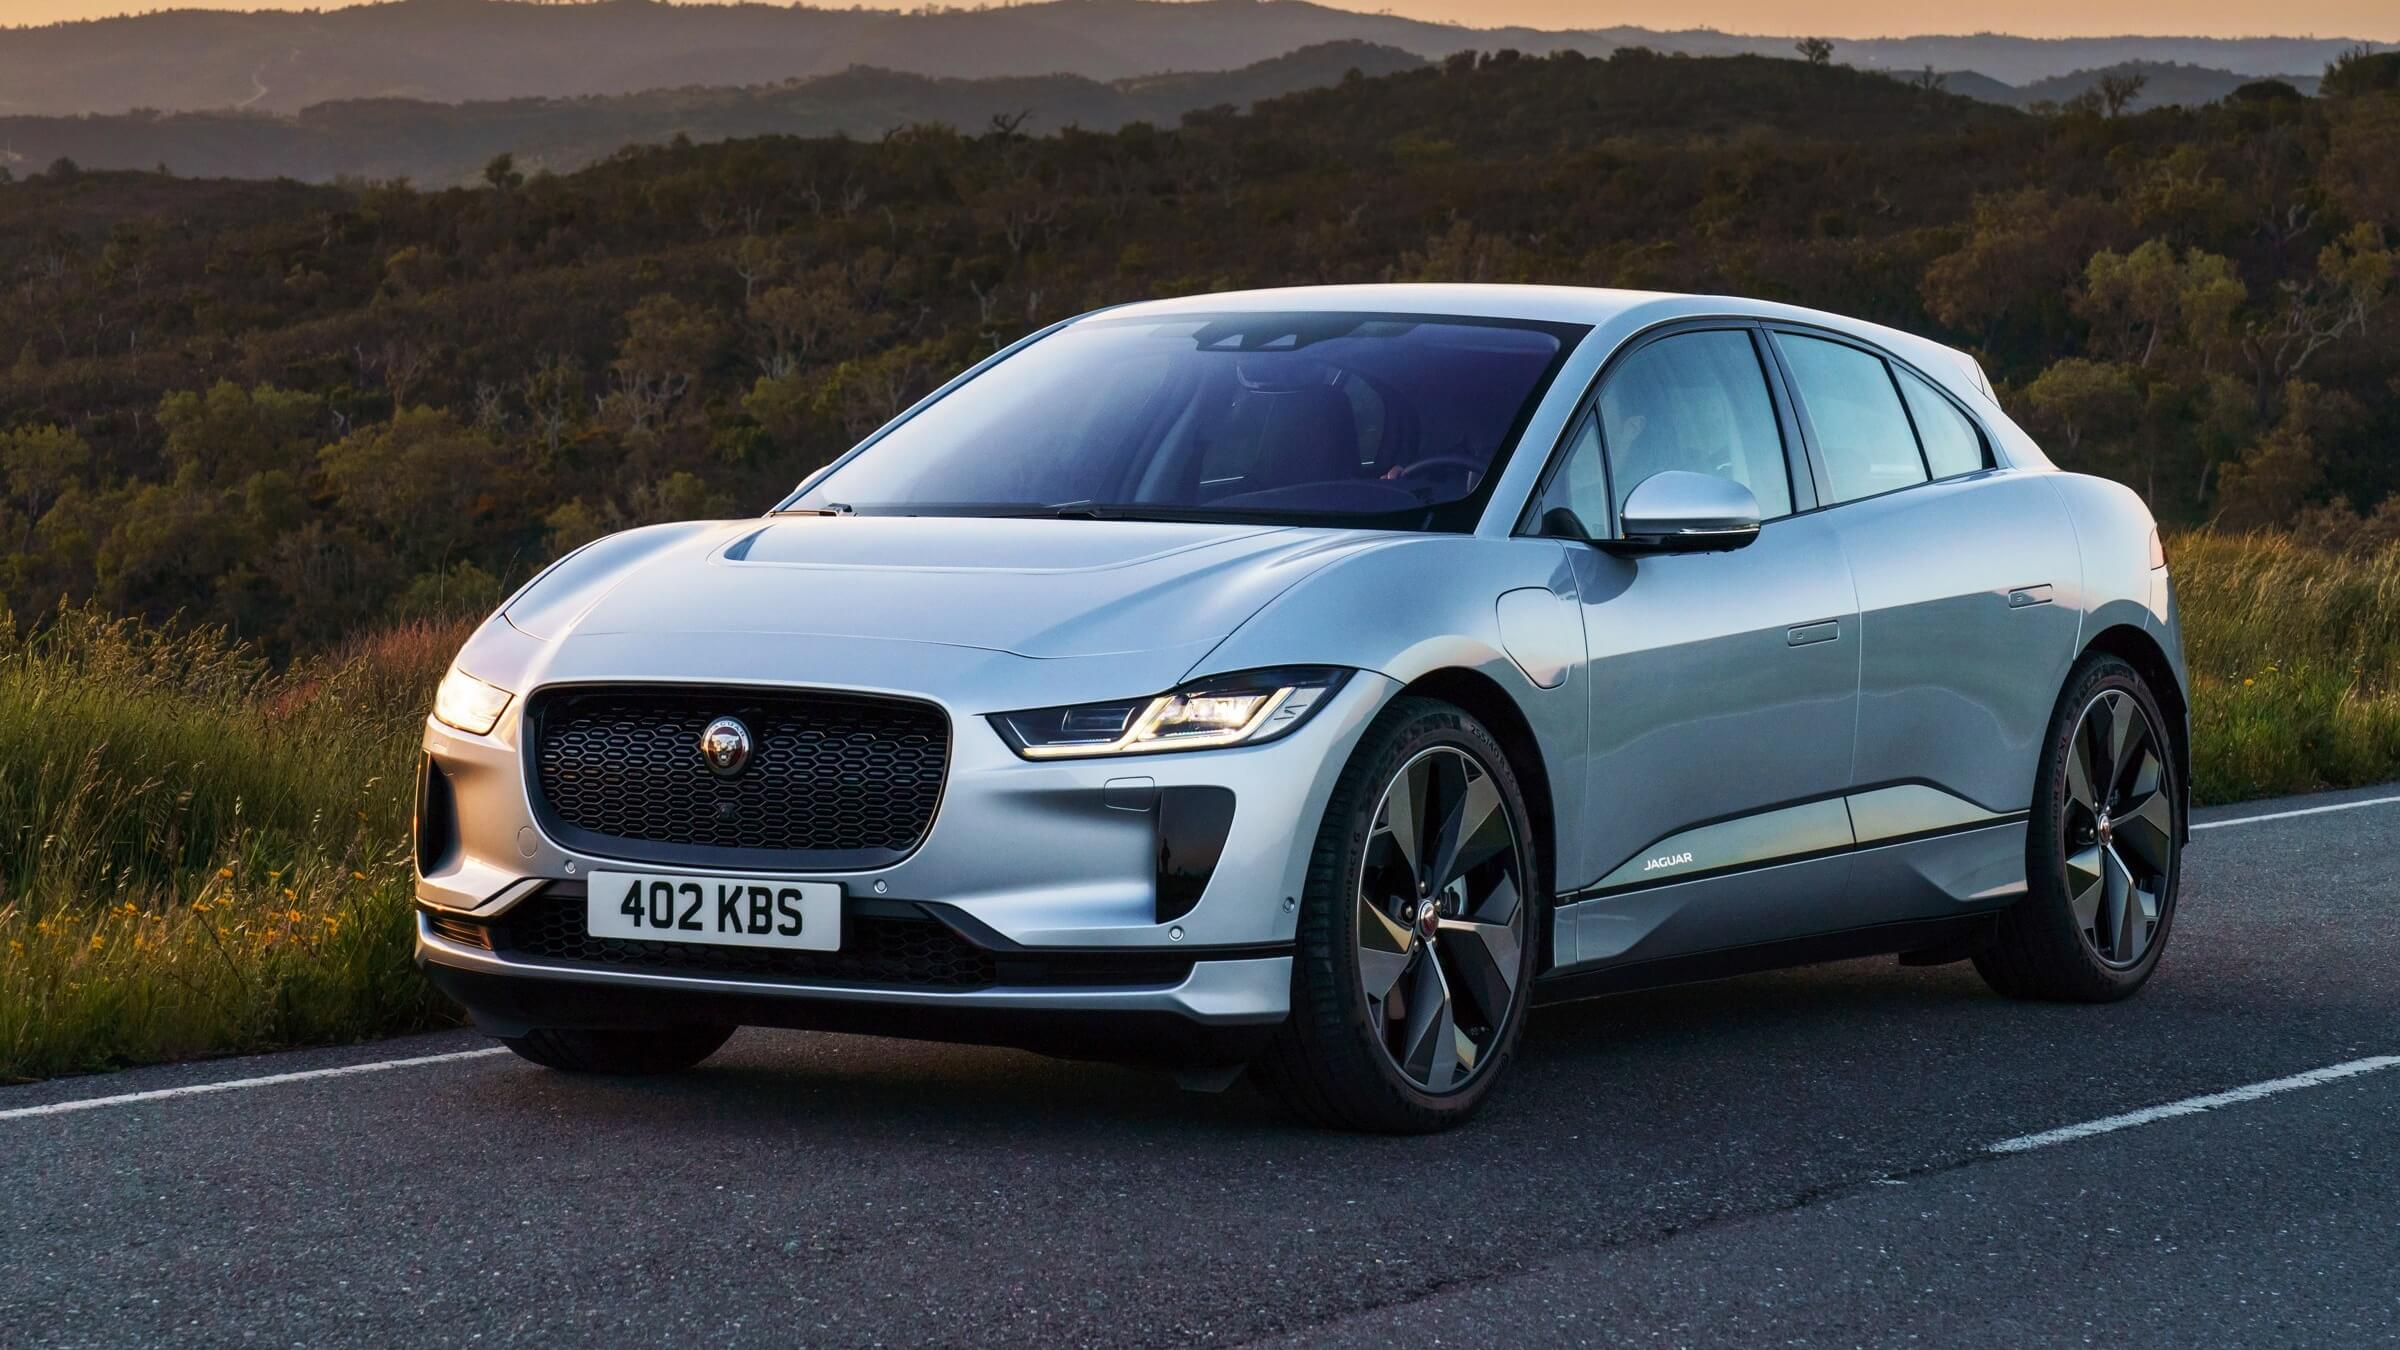 Jaguar Puts Faux Leather Interiors In the New I-PACE EV